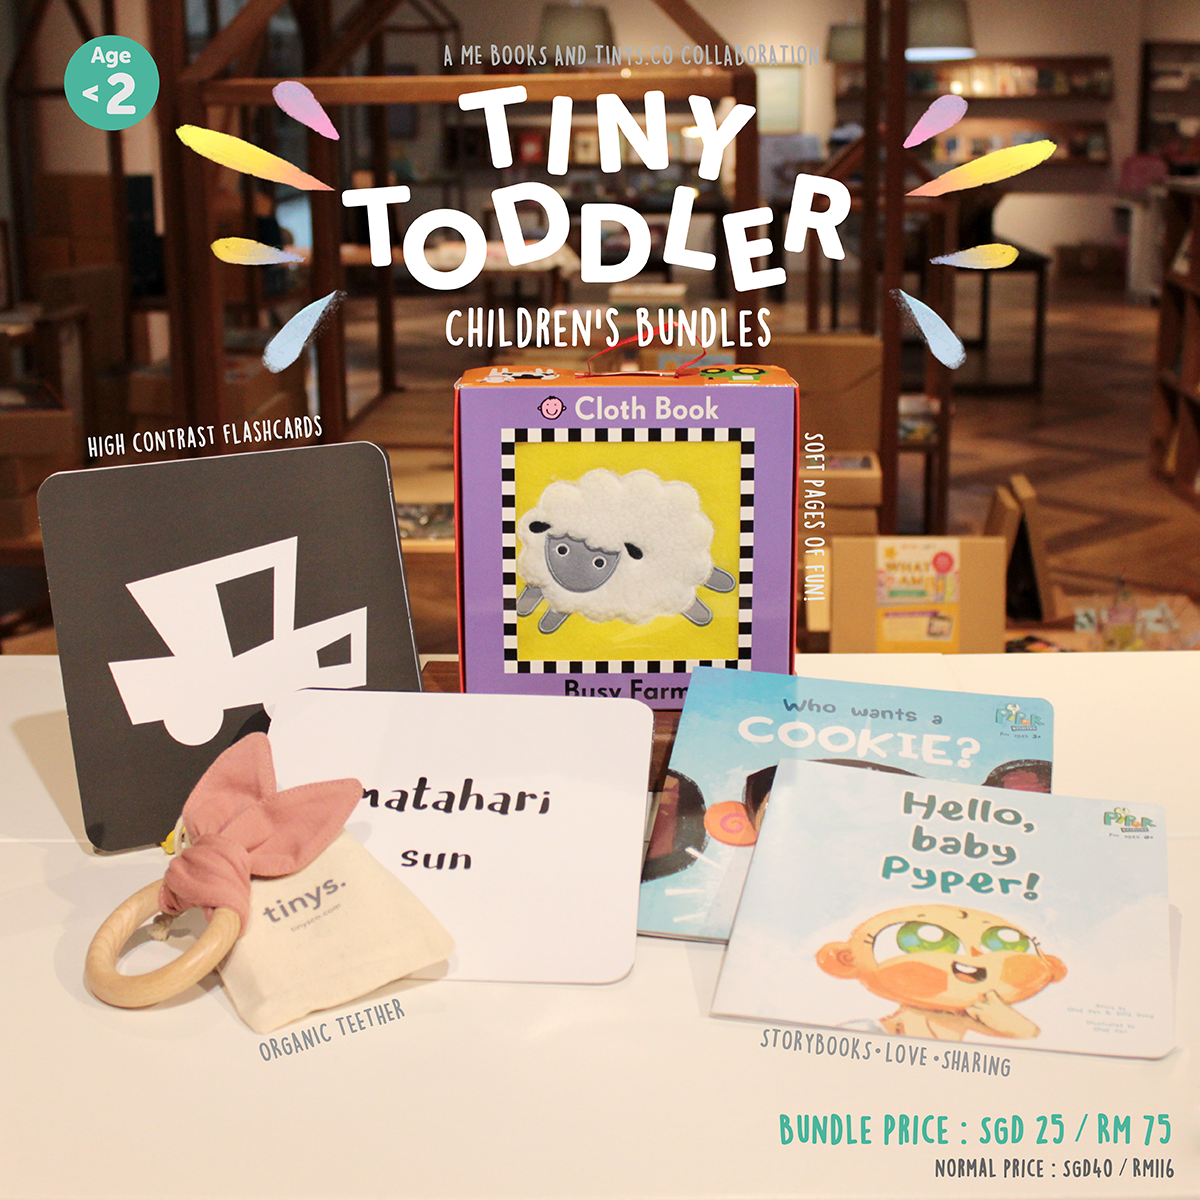 Tiny Toddler Children's Bundle